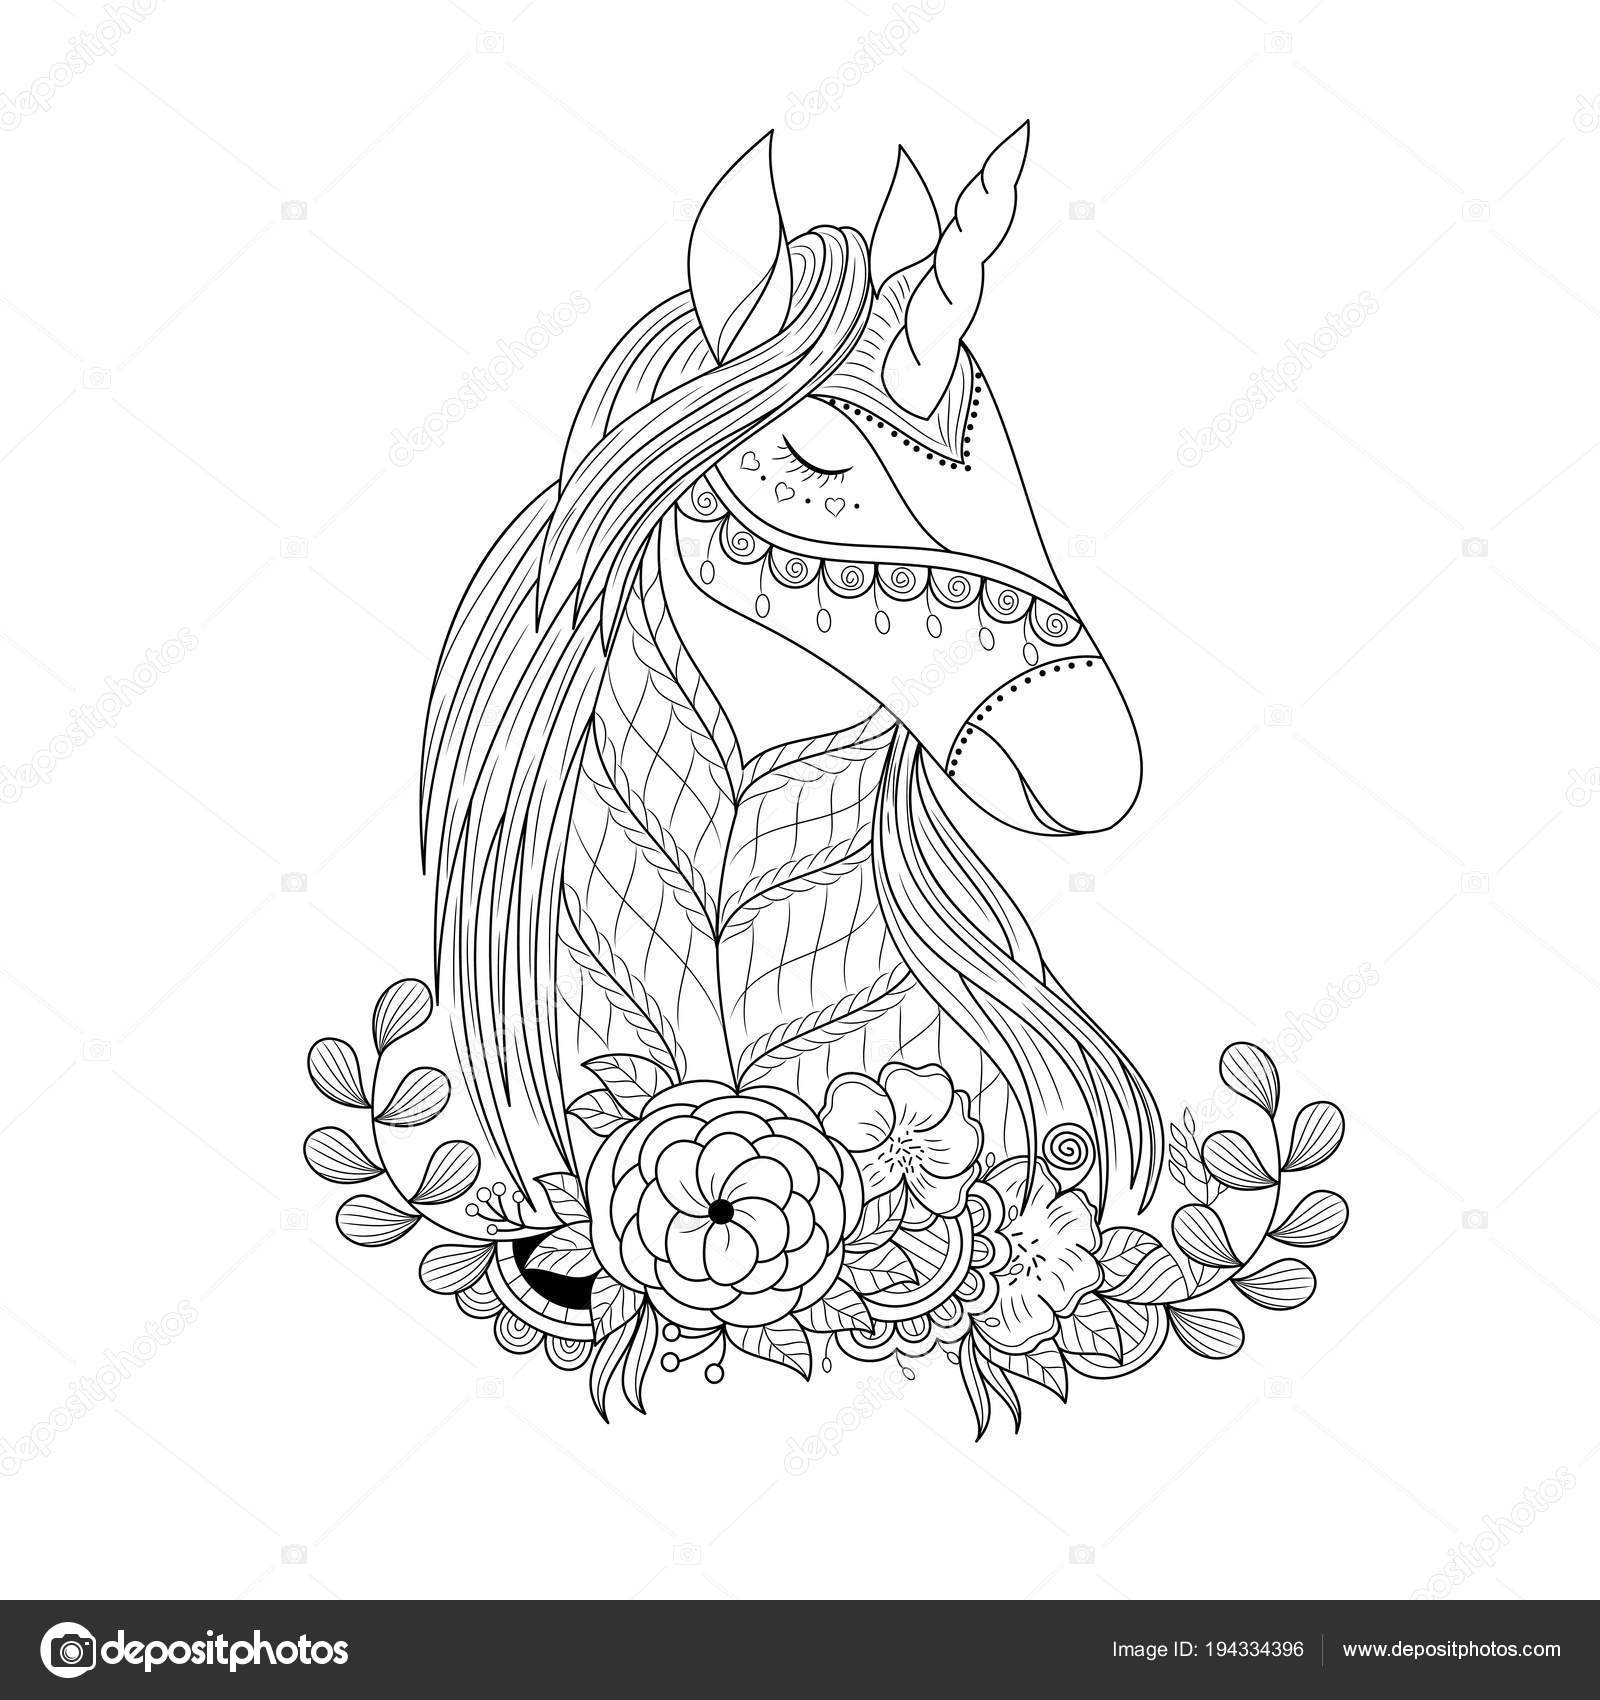 Unicorn Floral Zentangle Adult Coloring Book Page Vector